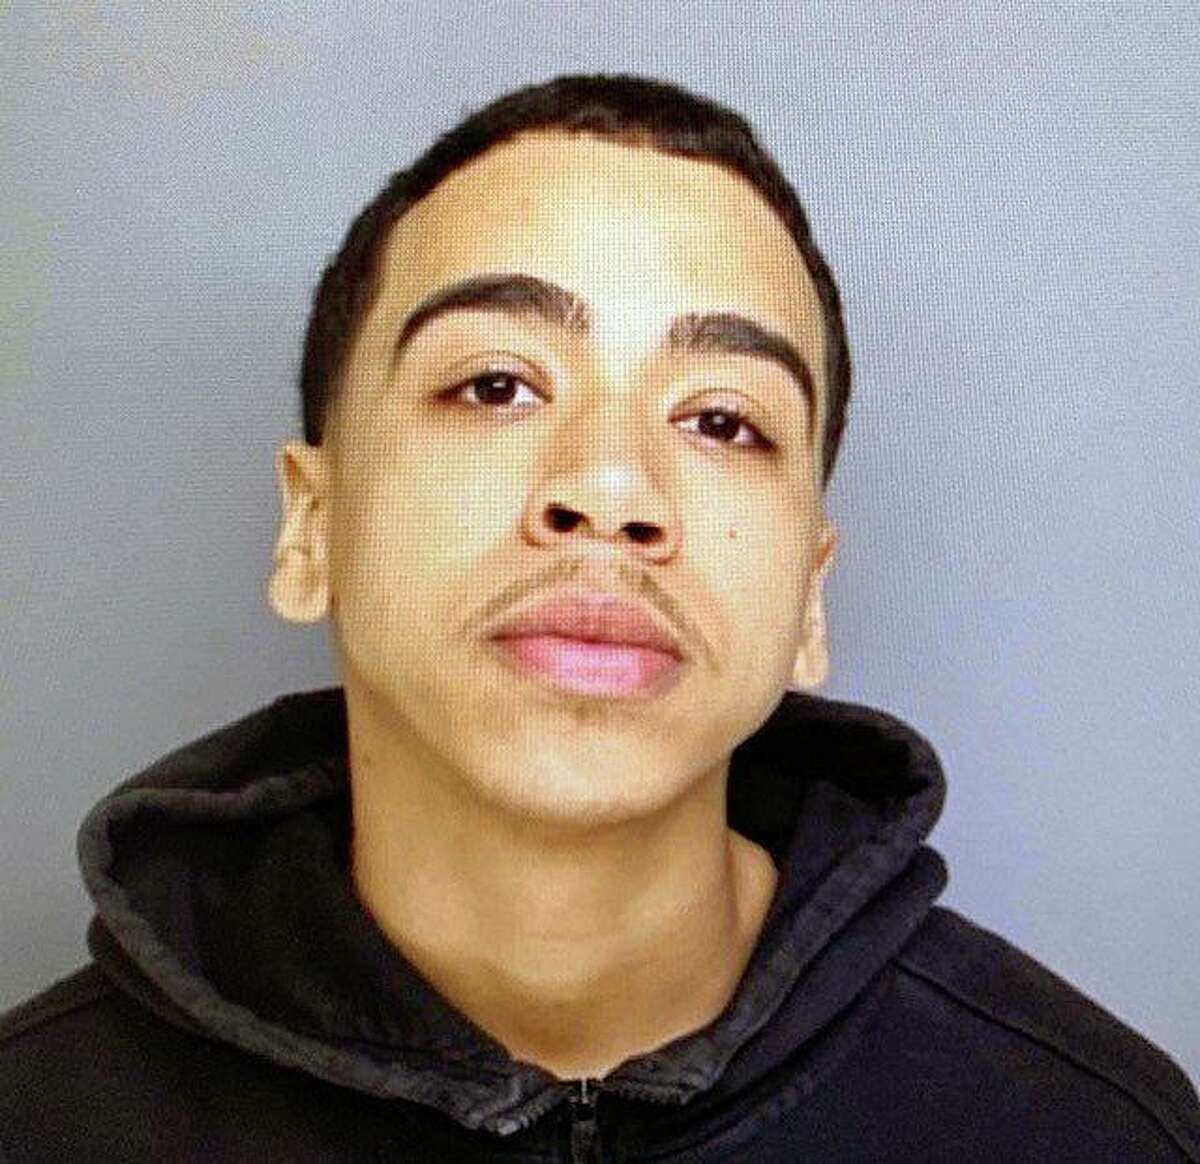 Vaughn Thomas Jr., 20, of Nelson Terrace in Bridgeport, Conn., was charged May 15, 2019, with felony murder, conspiracy to commit first degree robbery, first-degree robbery, carrying a pistol without a permit and illegal discharge of a firearm. Now he faces additional federal charges.